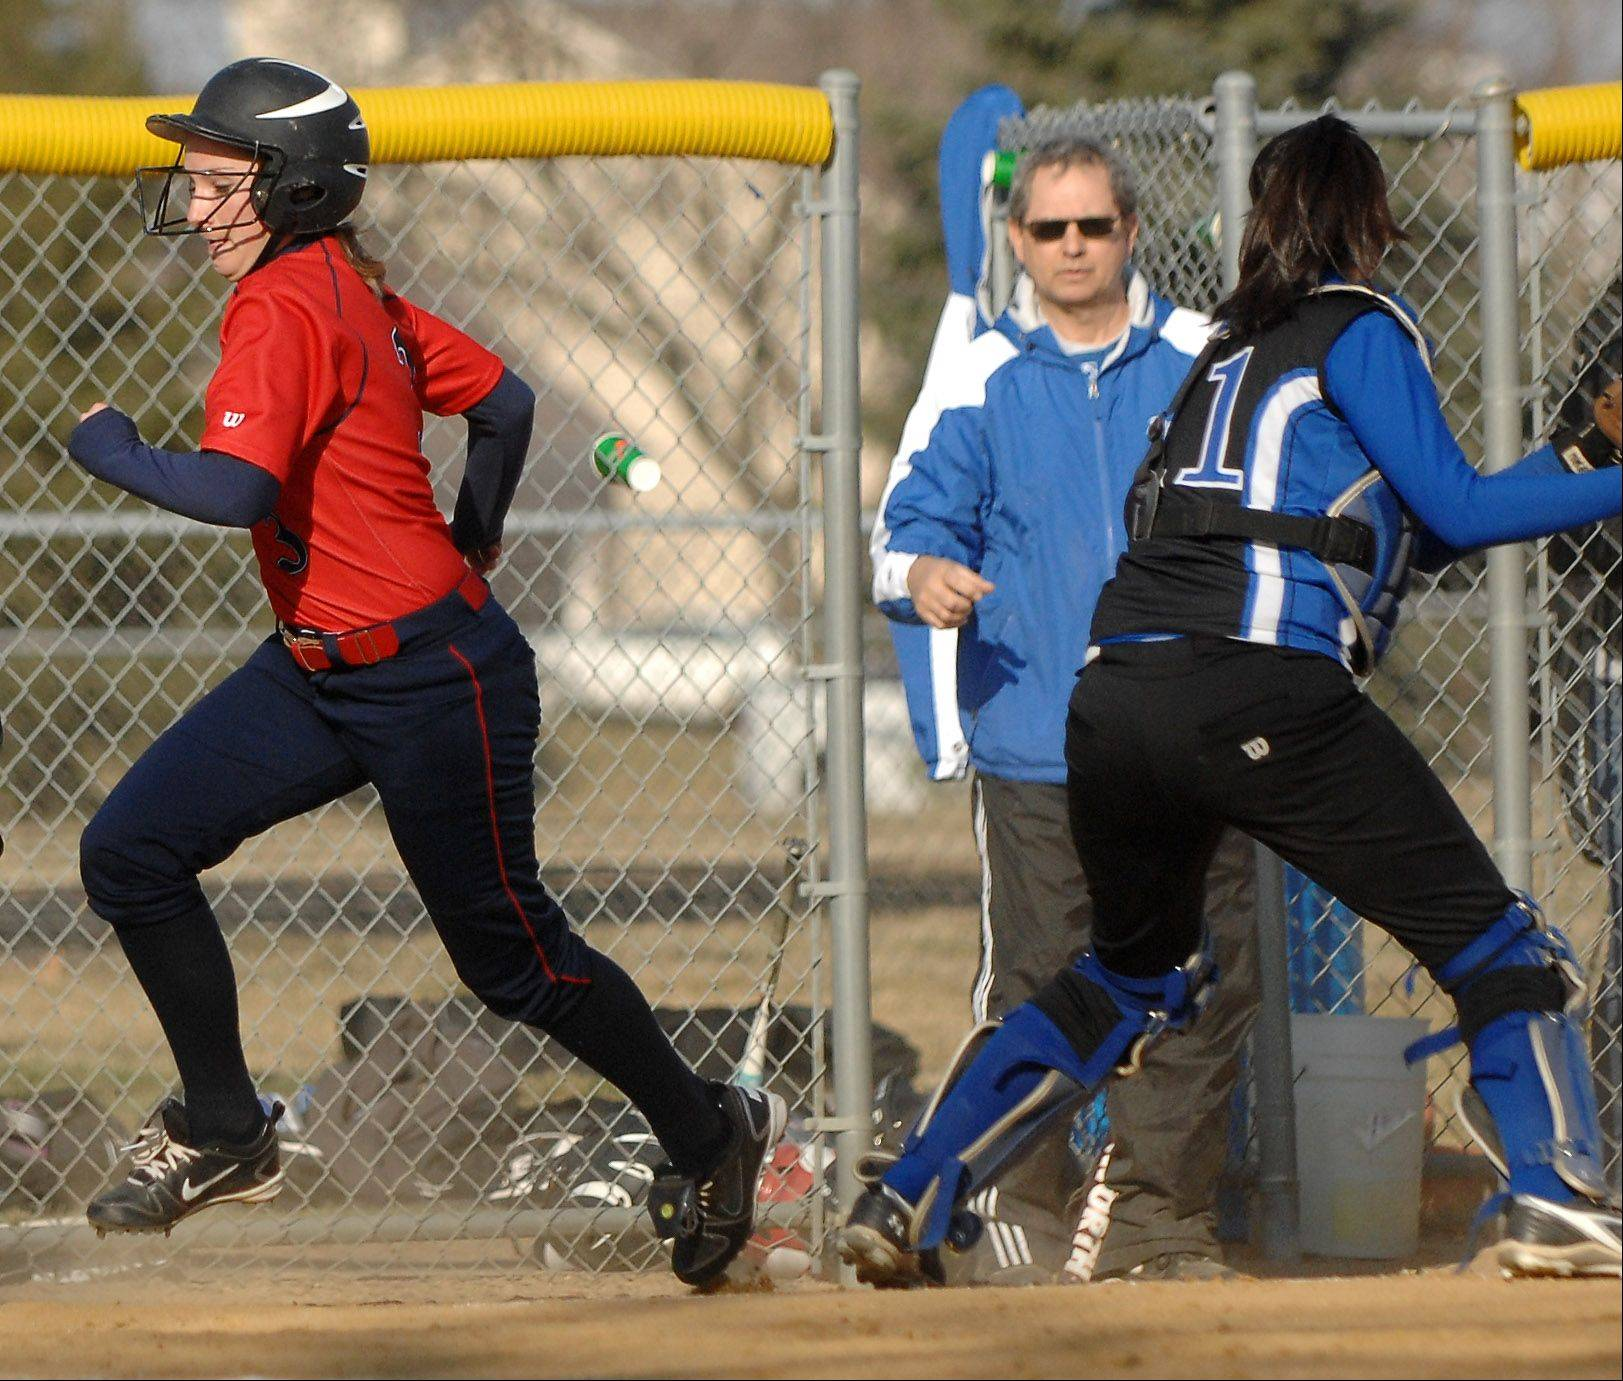 West Aurora�s Hannah Banks heads home to score on a botched Rosary rundown during Thursday�s game in Aurora.